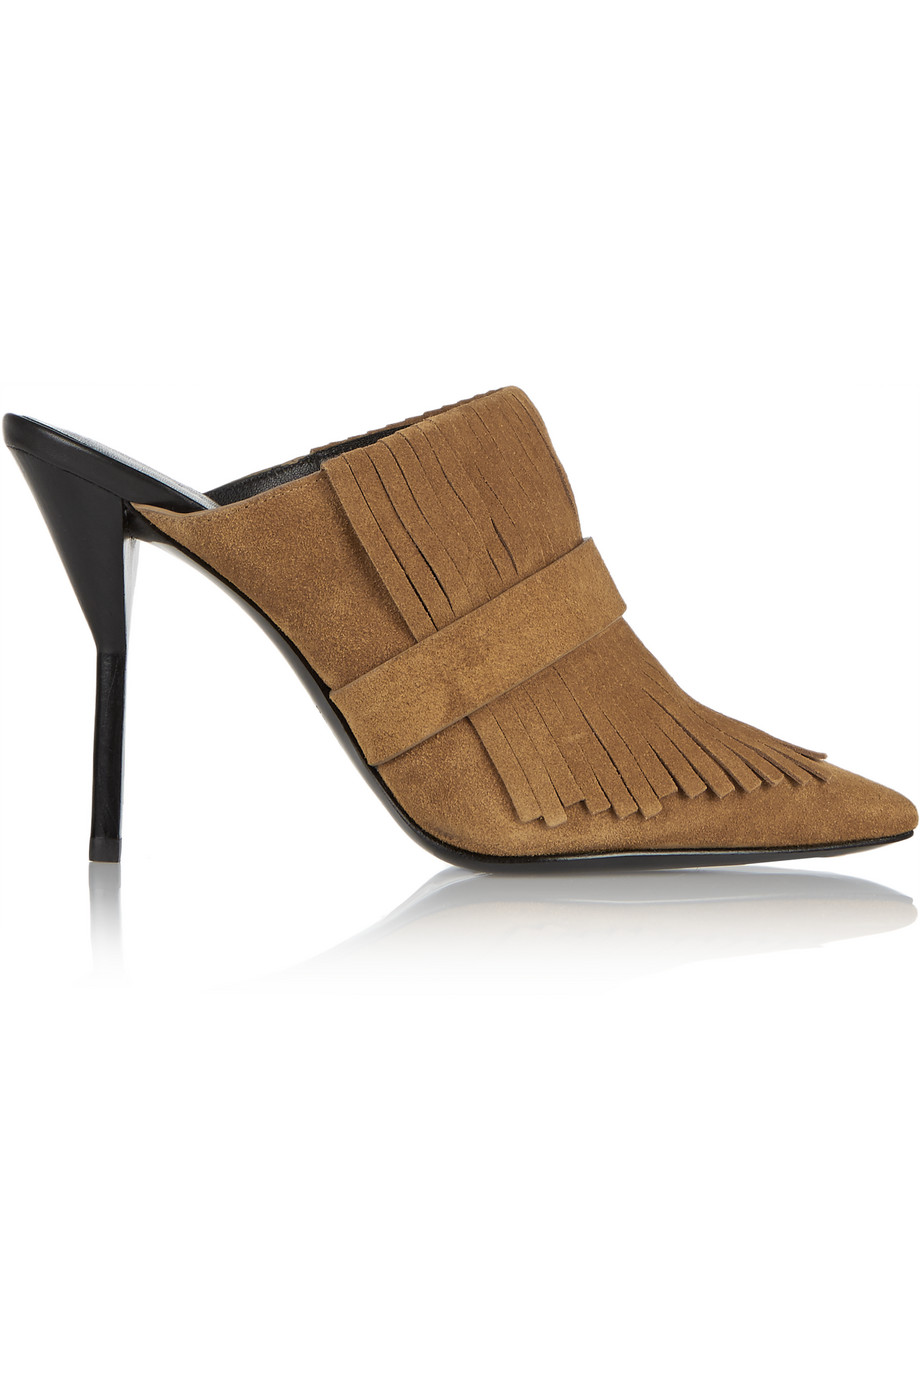 3.1 Phillip Lim Martini Fringed Suede Mules, Tan, Women's US Size: 8.5, Size: 39